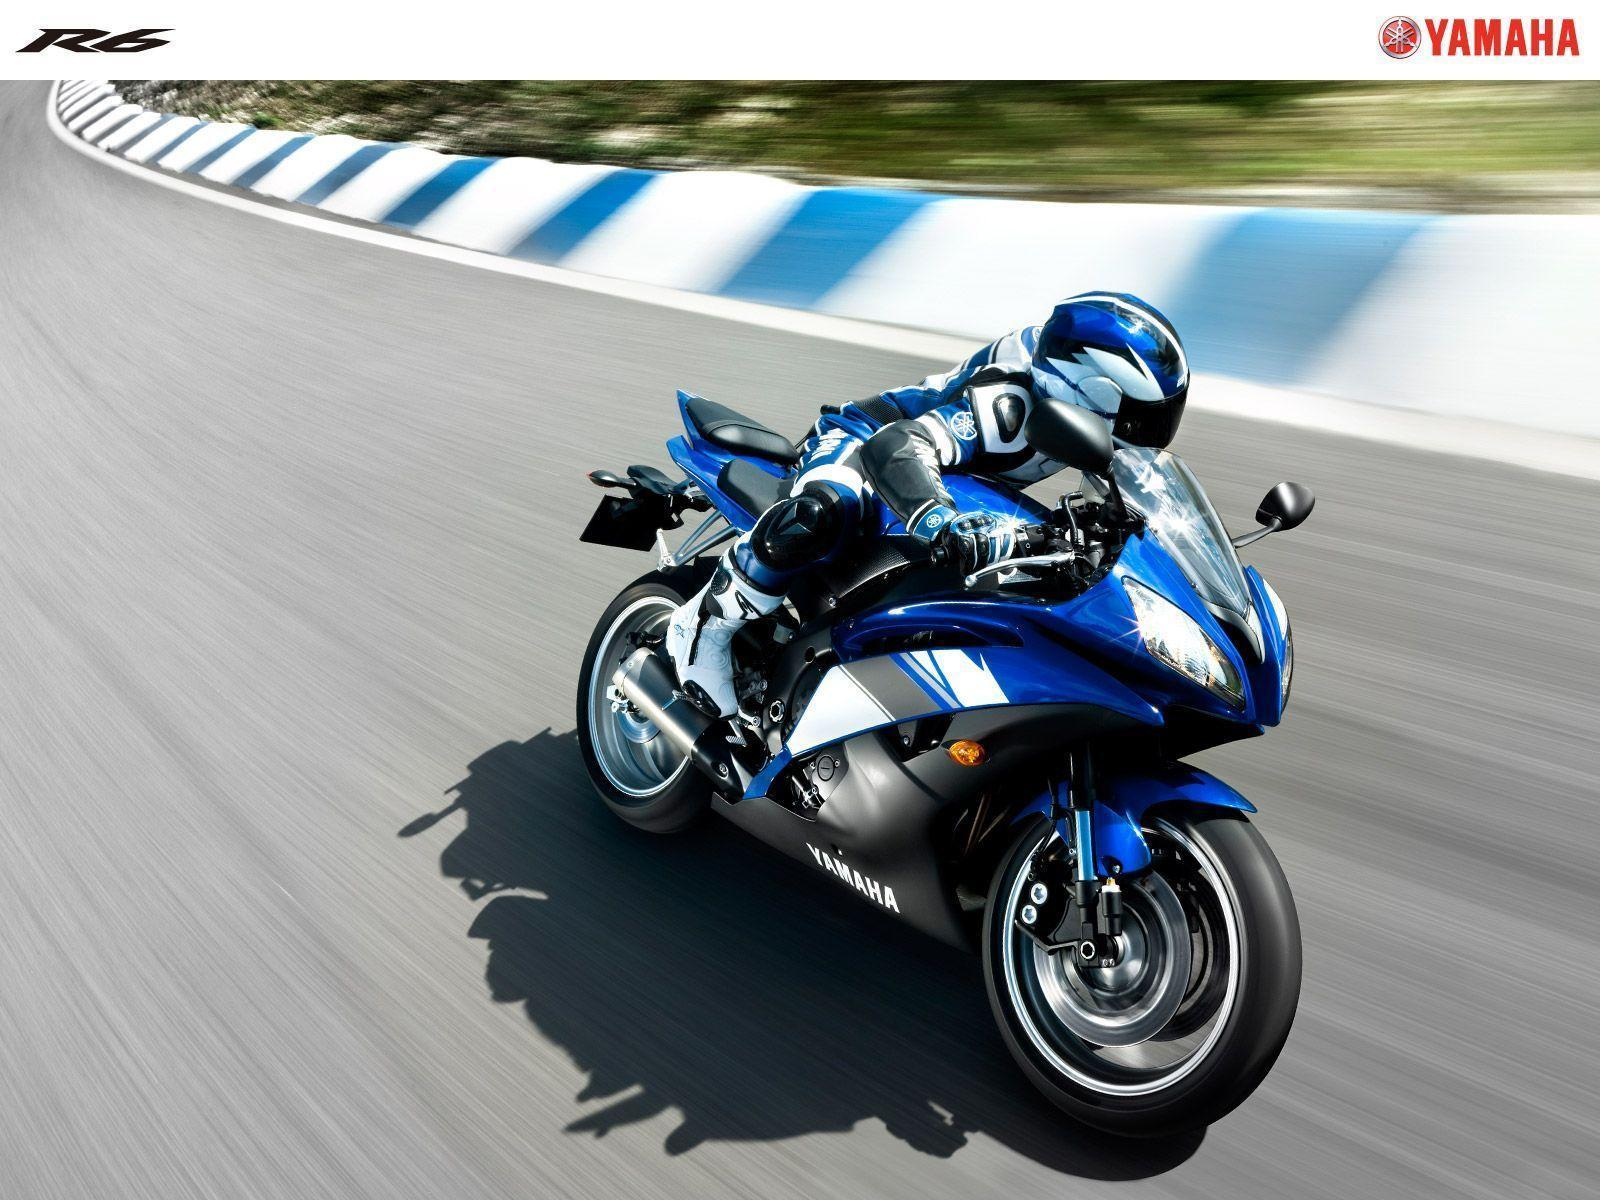 2009 Yamaha YZF R6 Wallpapers | HD Wallpapers